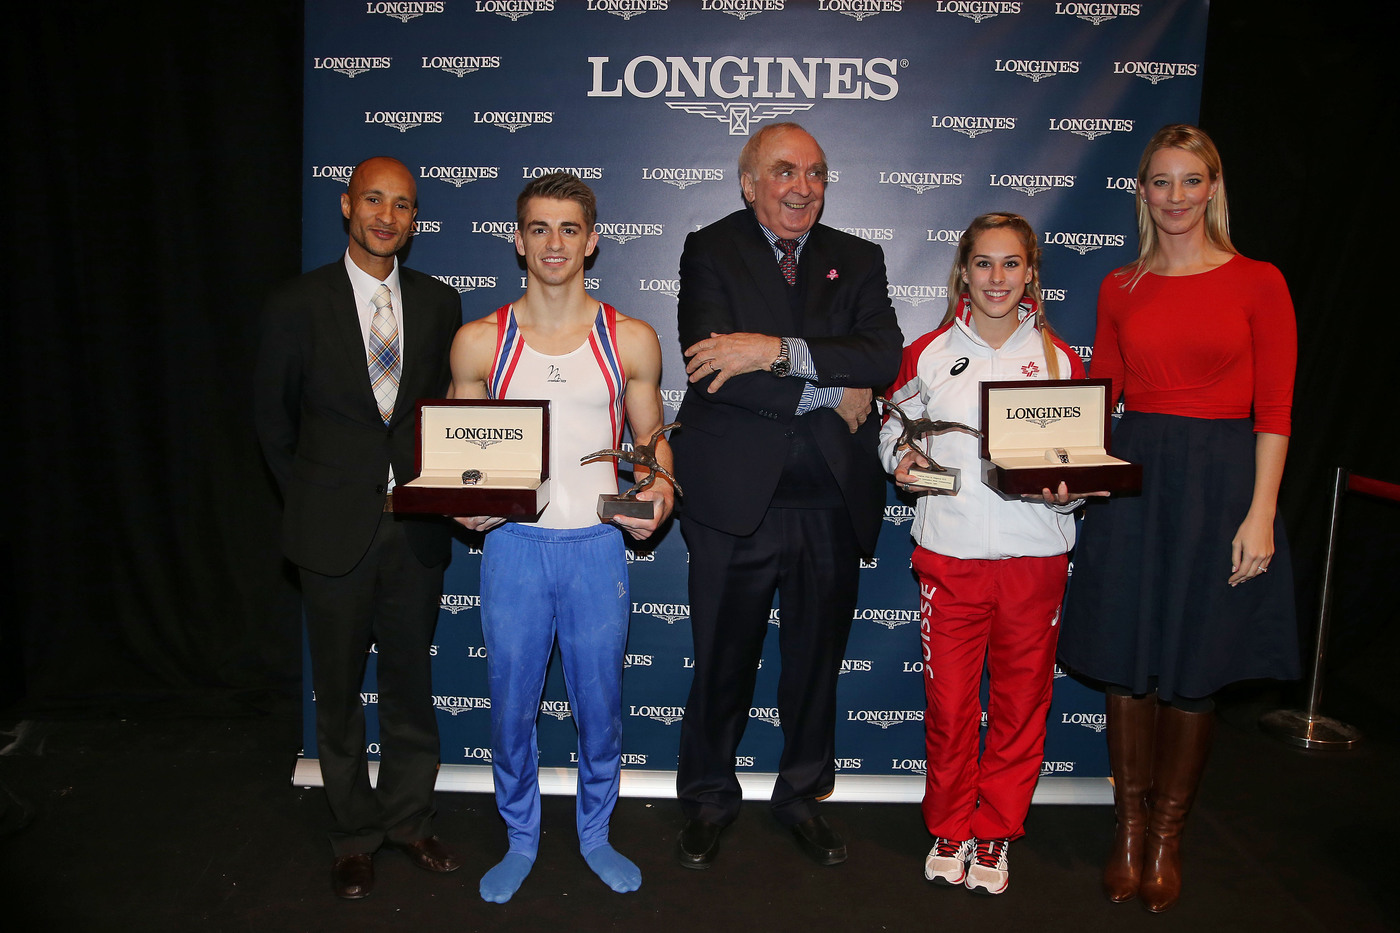 Longines Gymnastics Event: Elegance and performance to be celebrated at the 46th Artistic Gymnastics World Championships 2